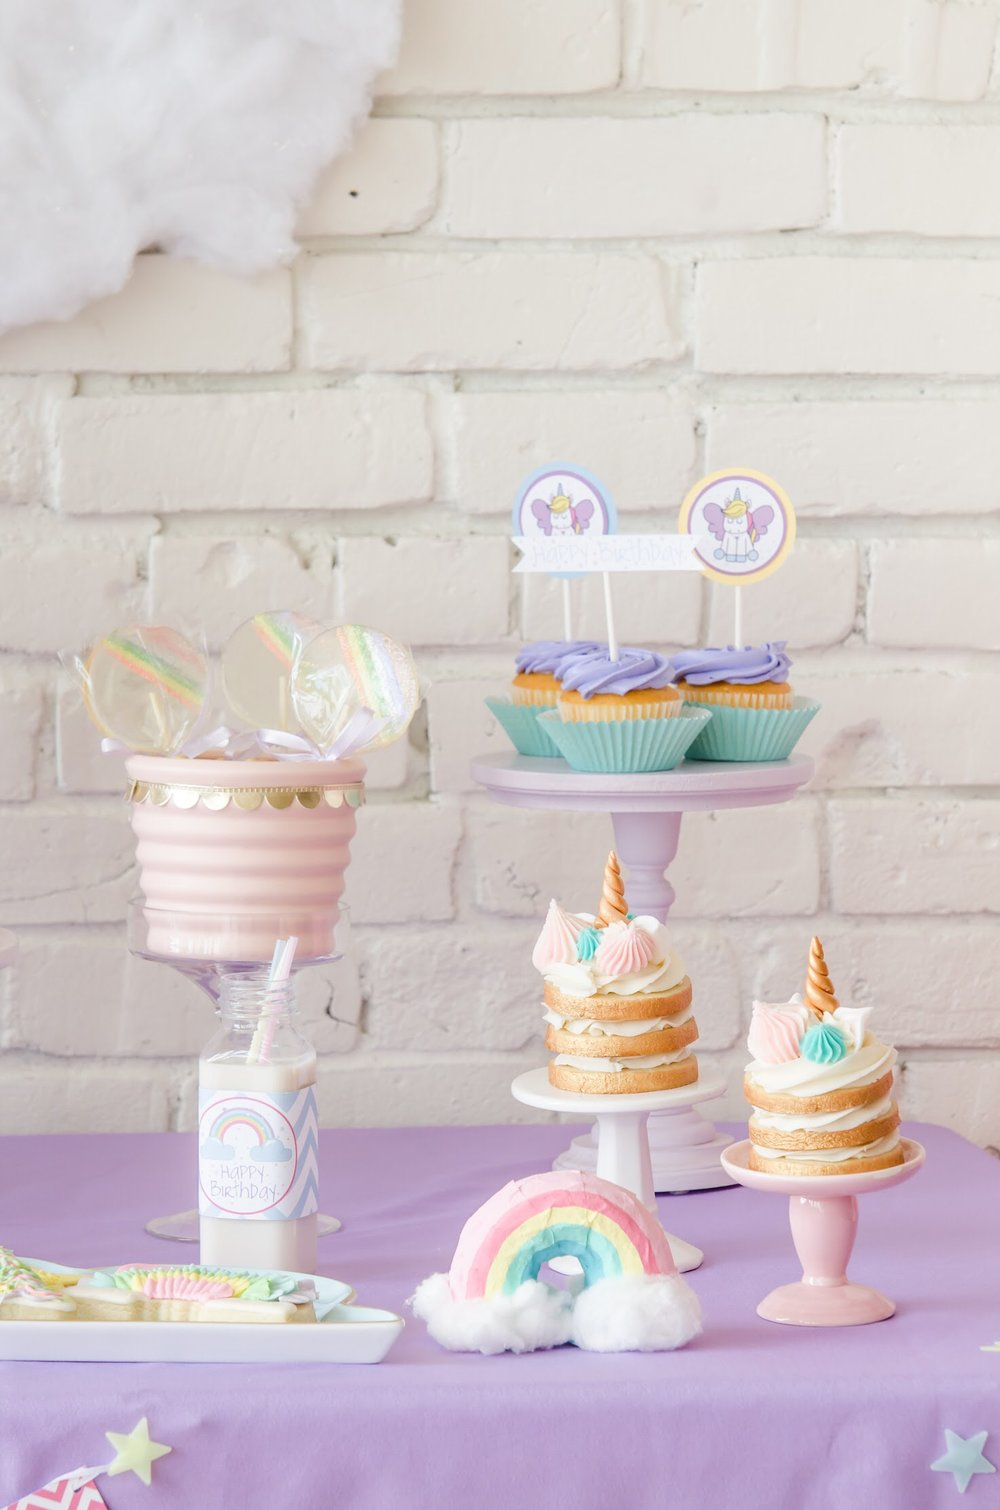 Find out how to create these super cute paper mâché rainbows from this pastel rainbow Unicorn party. All the Unicorn Birthday Party Ideas can be found at Mint Event Design www.minteventdesign.com #unicornparty #birthdayparty #birthdaypartyideas #pastelrainbow #papermache